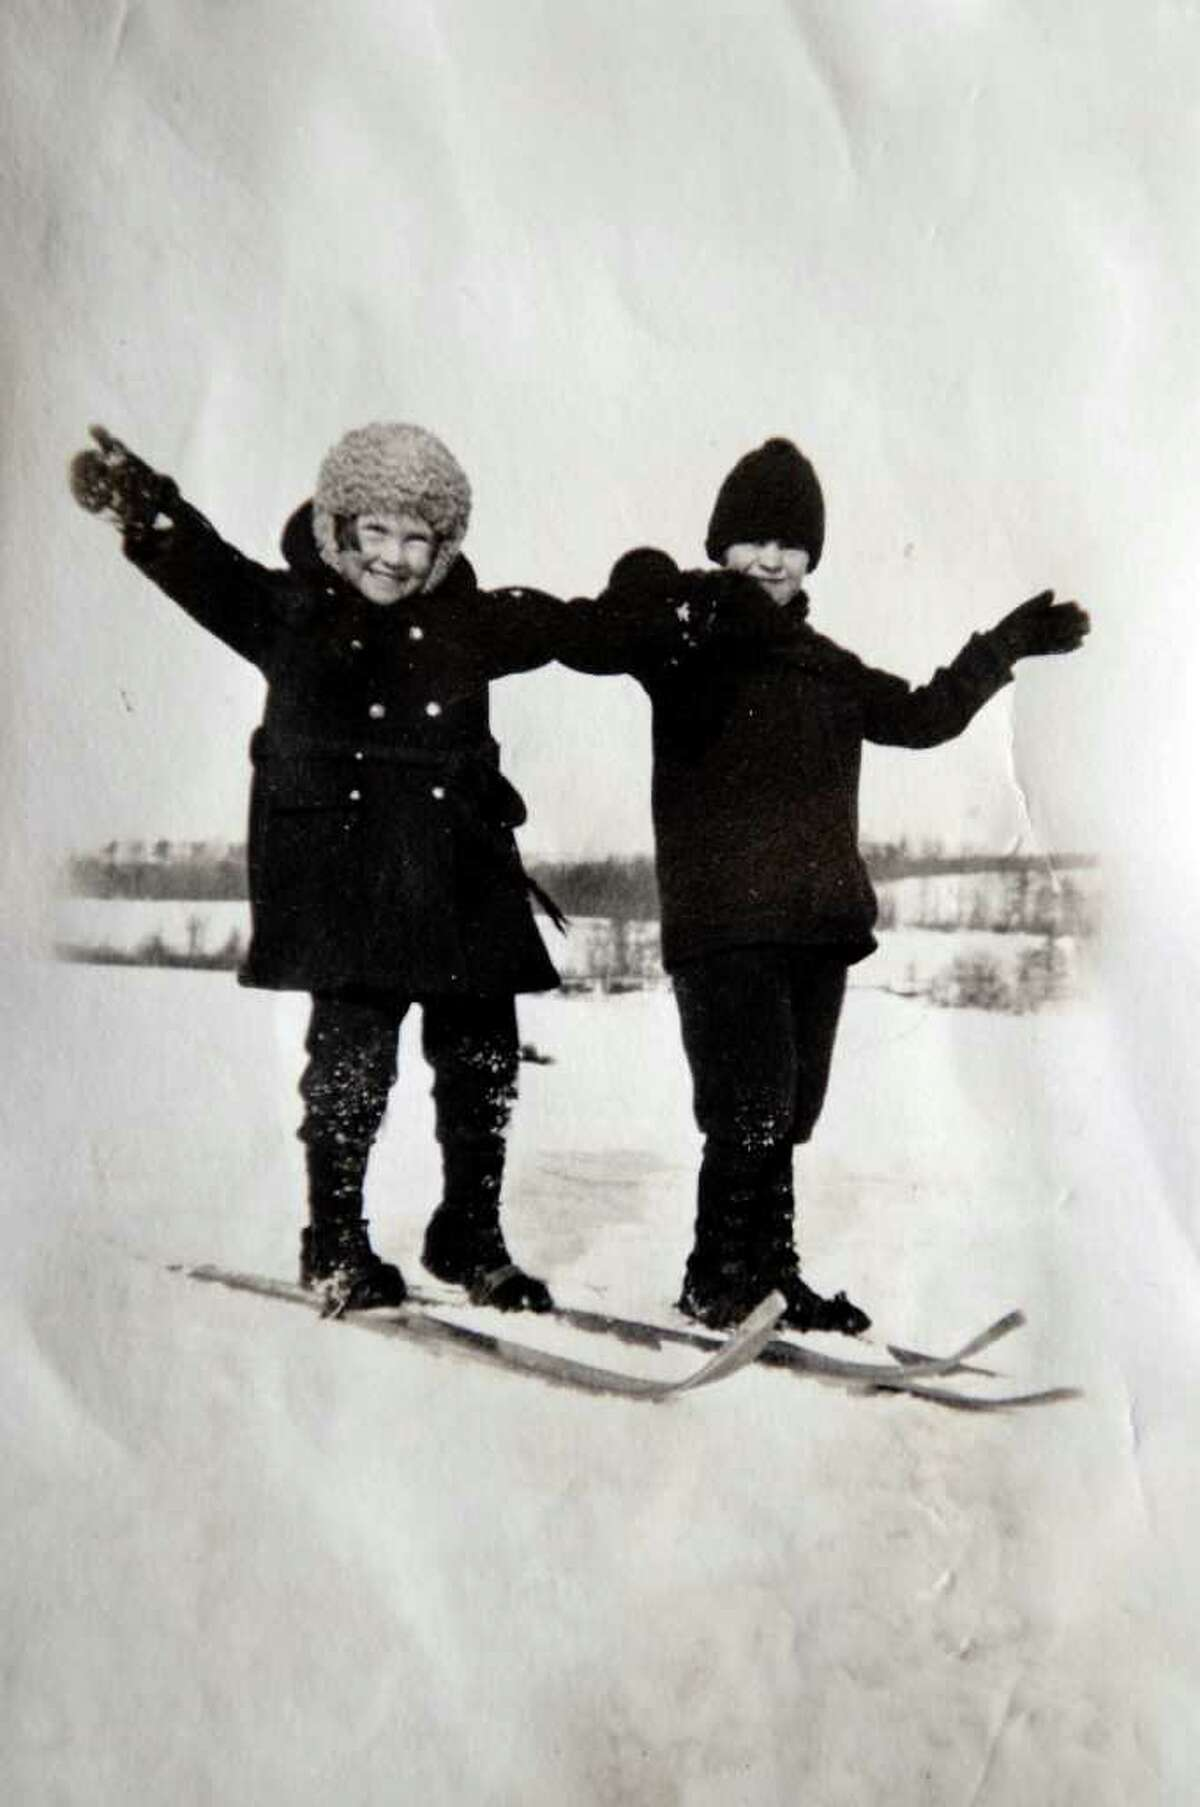 Schenectady Ski School instructor Freddie Anderson in a photograph of herself at age 6 in 1927, left, with her friend Jean Streiberat the Mohawk Golf Club. Anderson has been skiing since she was 3 years old. (Photograph provided courtesy of Freddie Anderson to the Times Union )